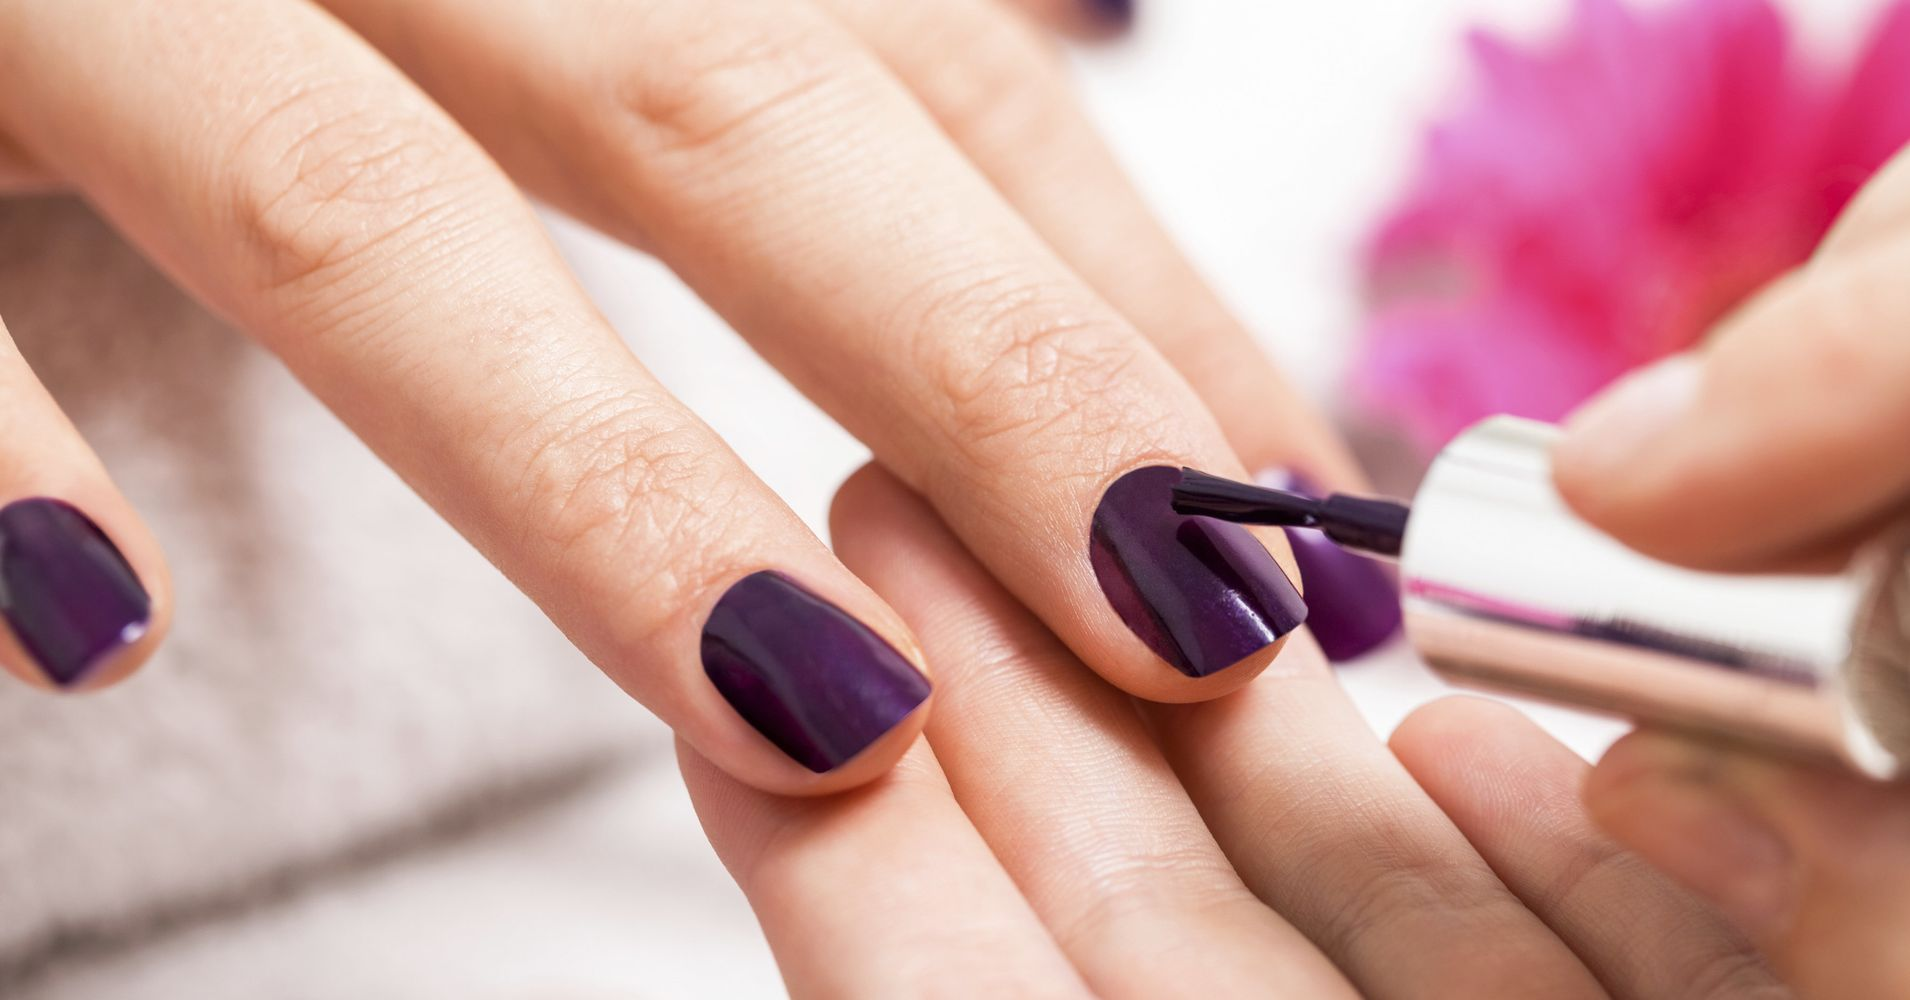 13 Dark Nail Polish Colors To Try That Aren\'t Black | HuffPost